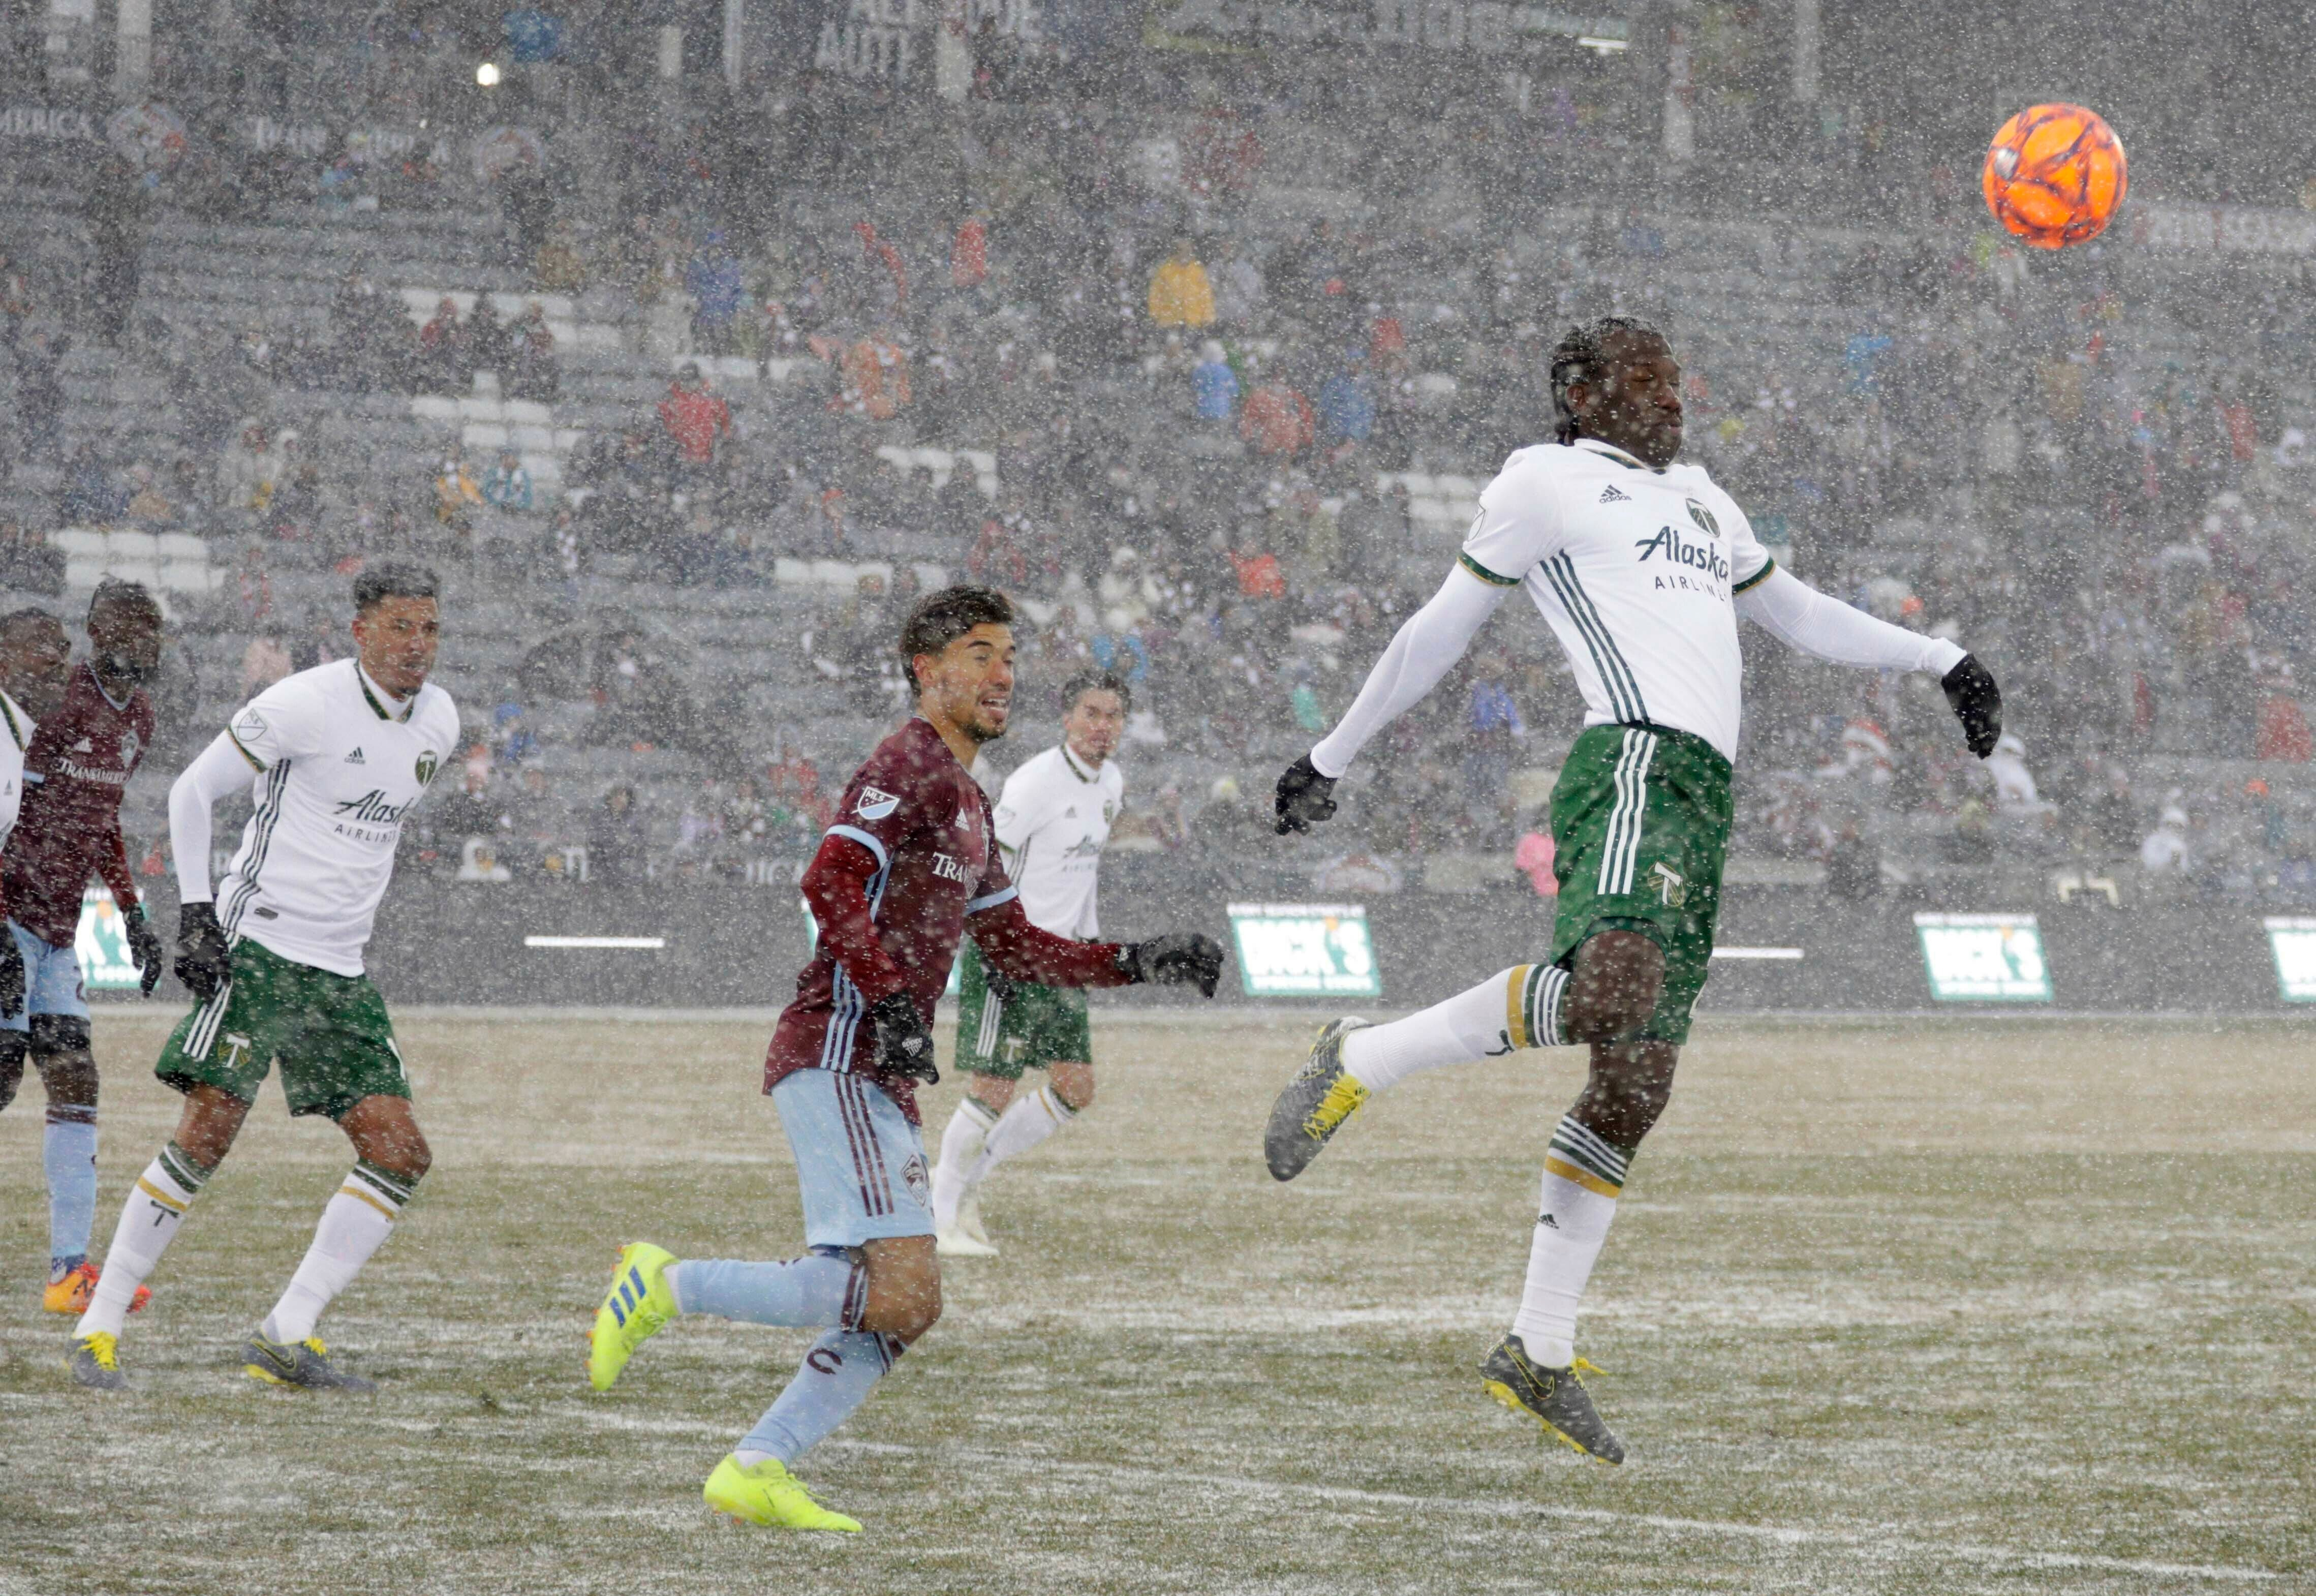 Rapids, Timbers tie 3-3 in coldest match in MLS history